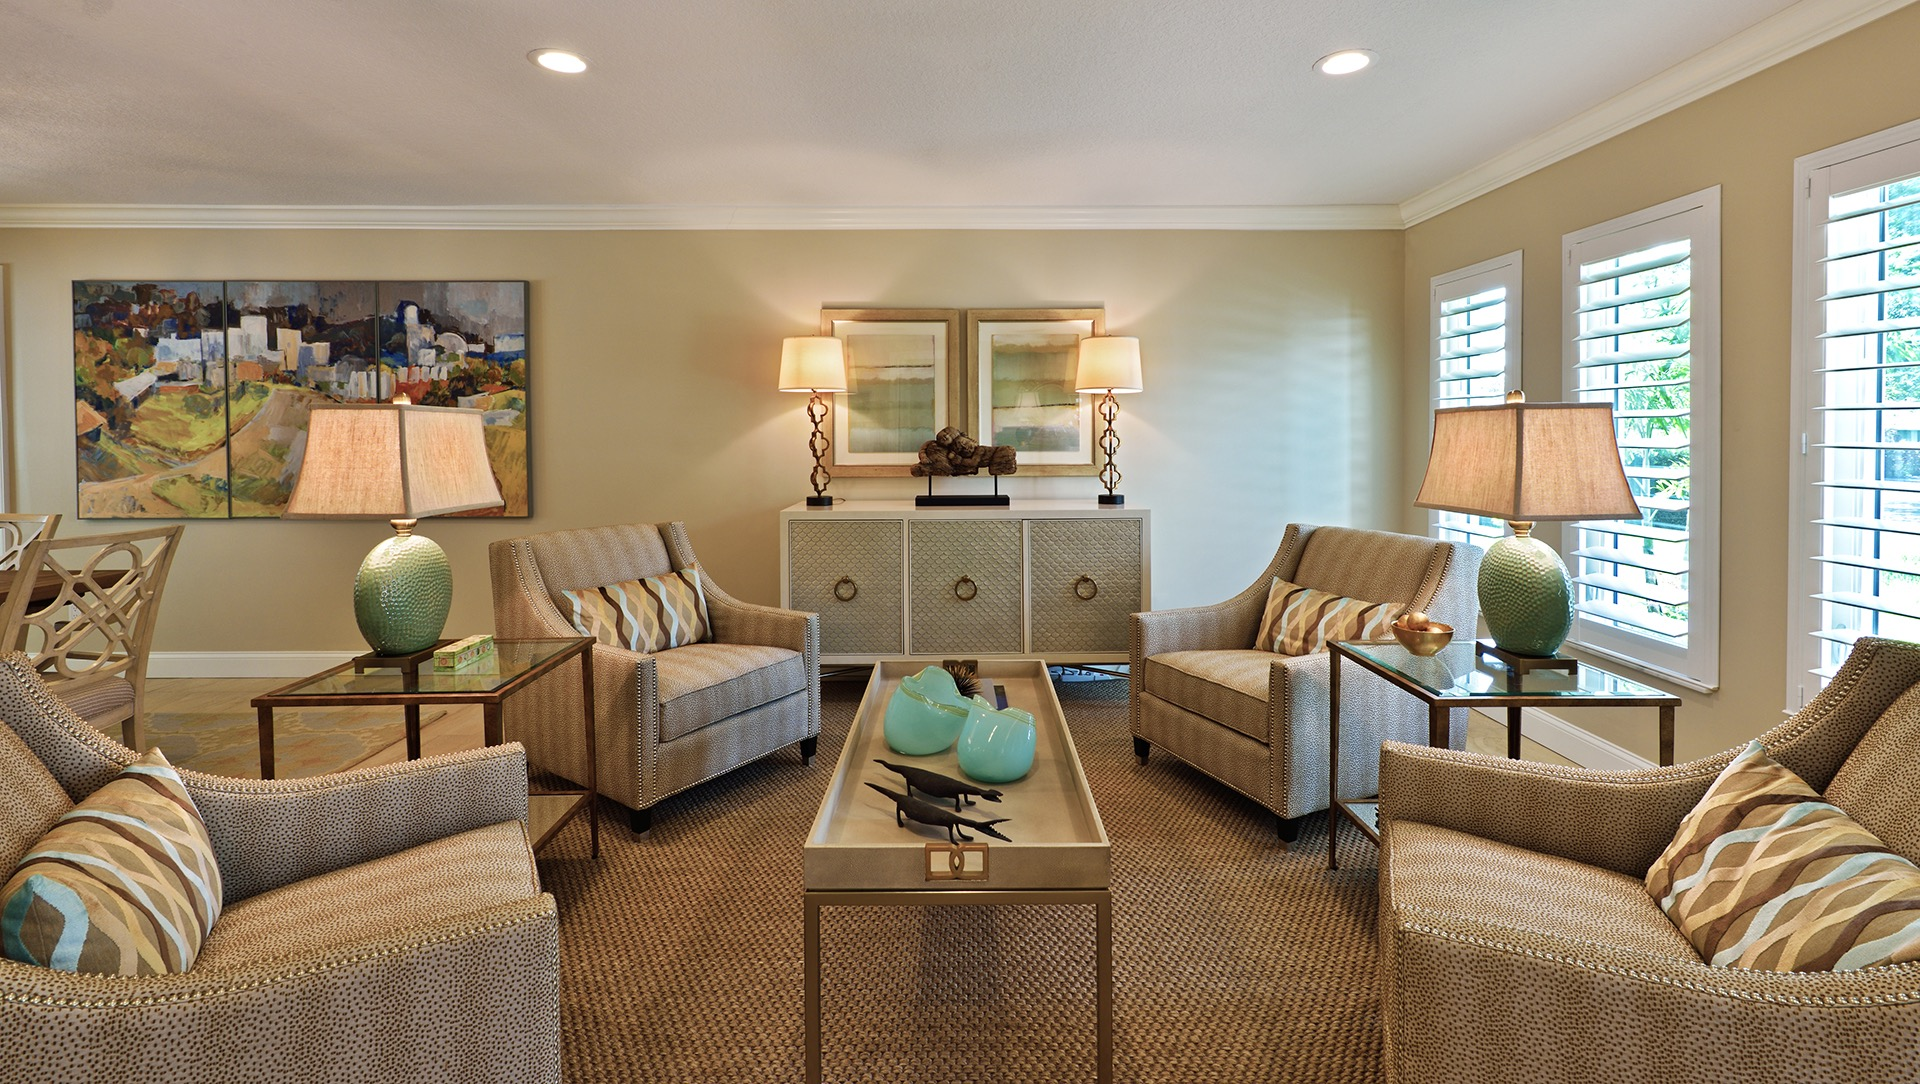 Brown Carpet Flooring For Classic Living Room Interior (View 12 of 15)